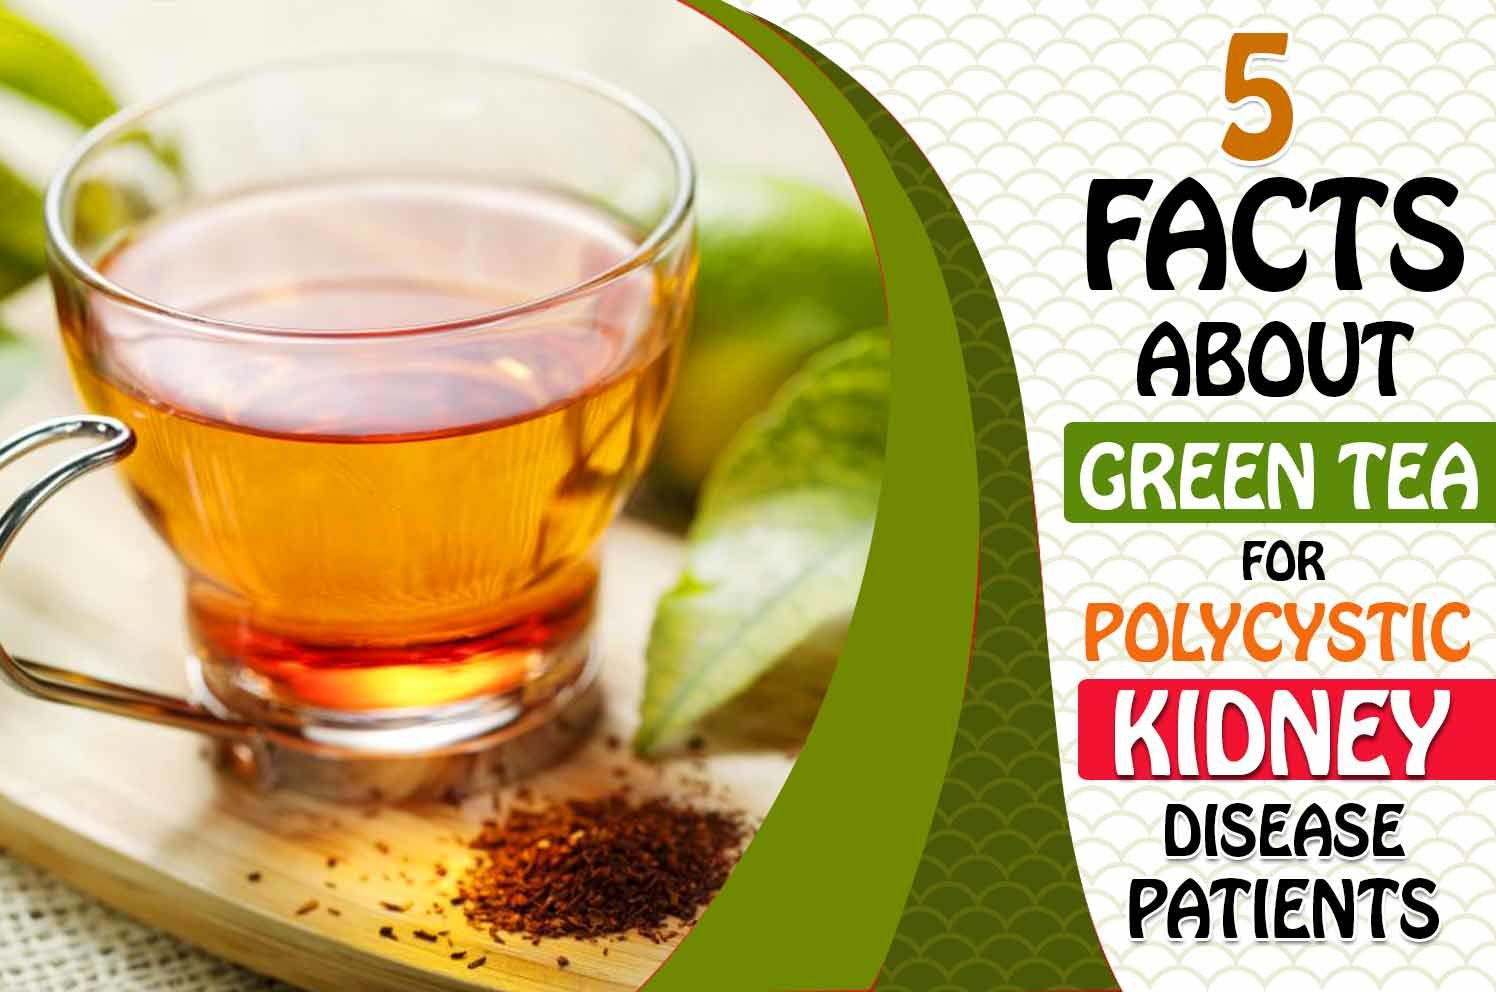 Green Tea For Polycystic Kidney Disease Patients